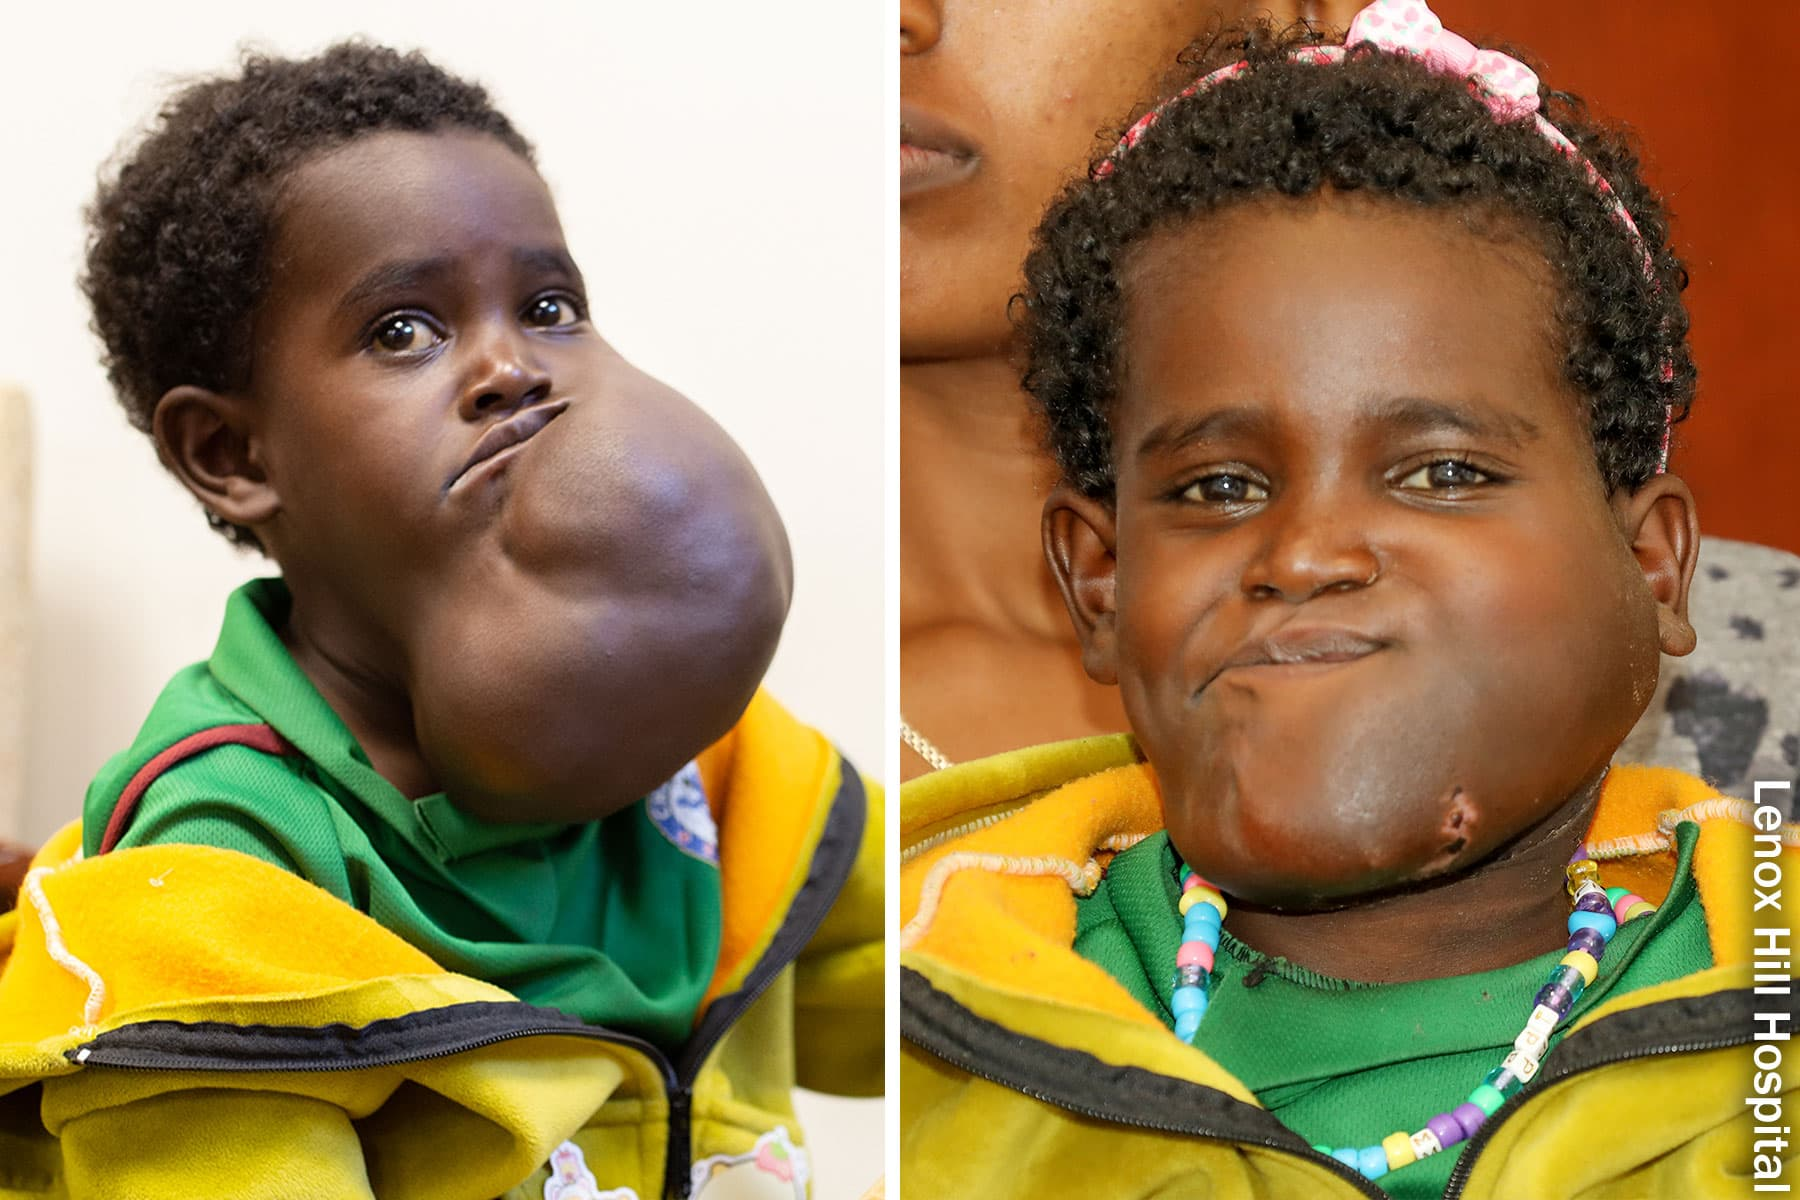 girl with tumor before after